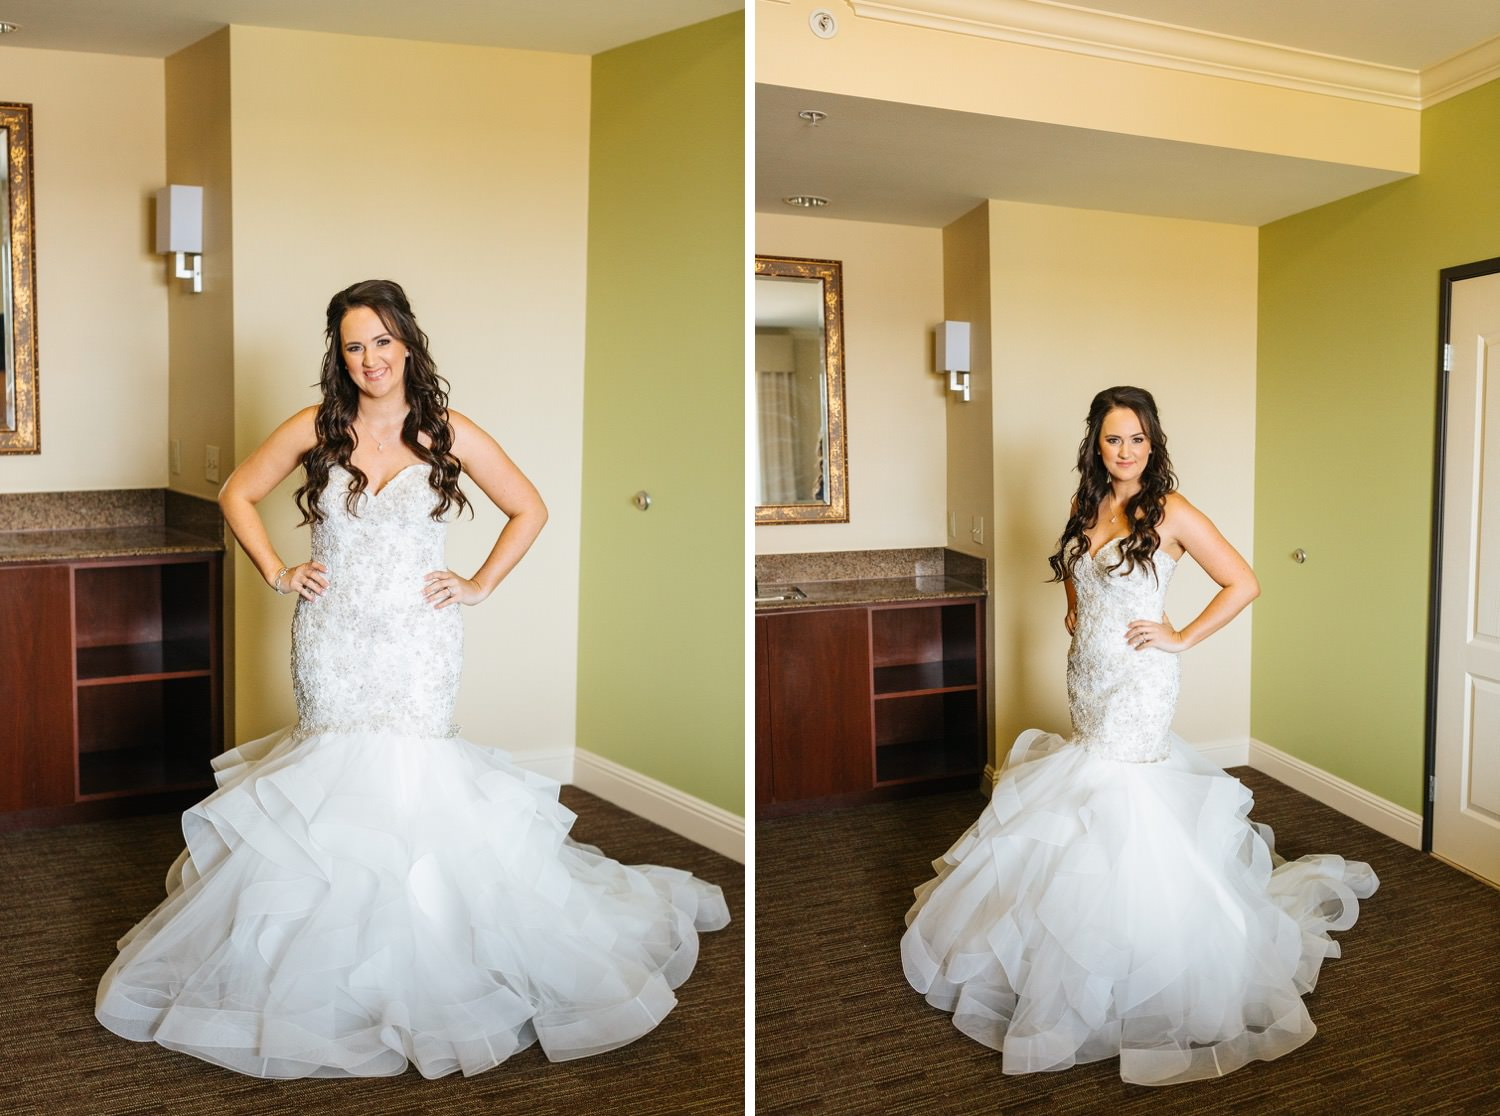 Bride in her wedding dress - https://brittneyhannonphotography.com